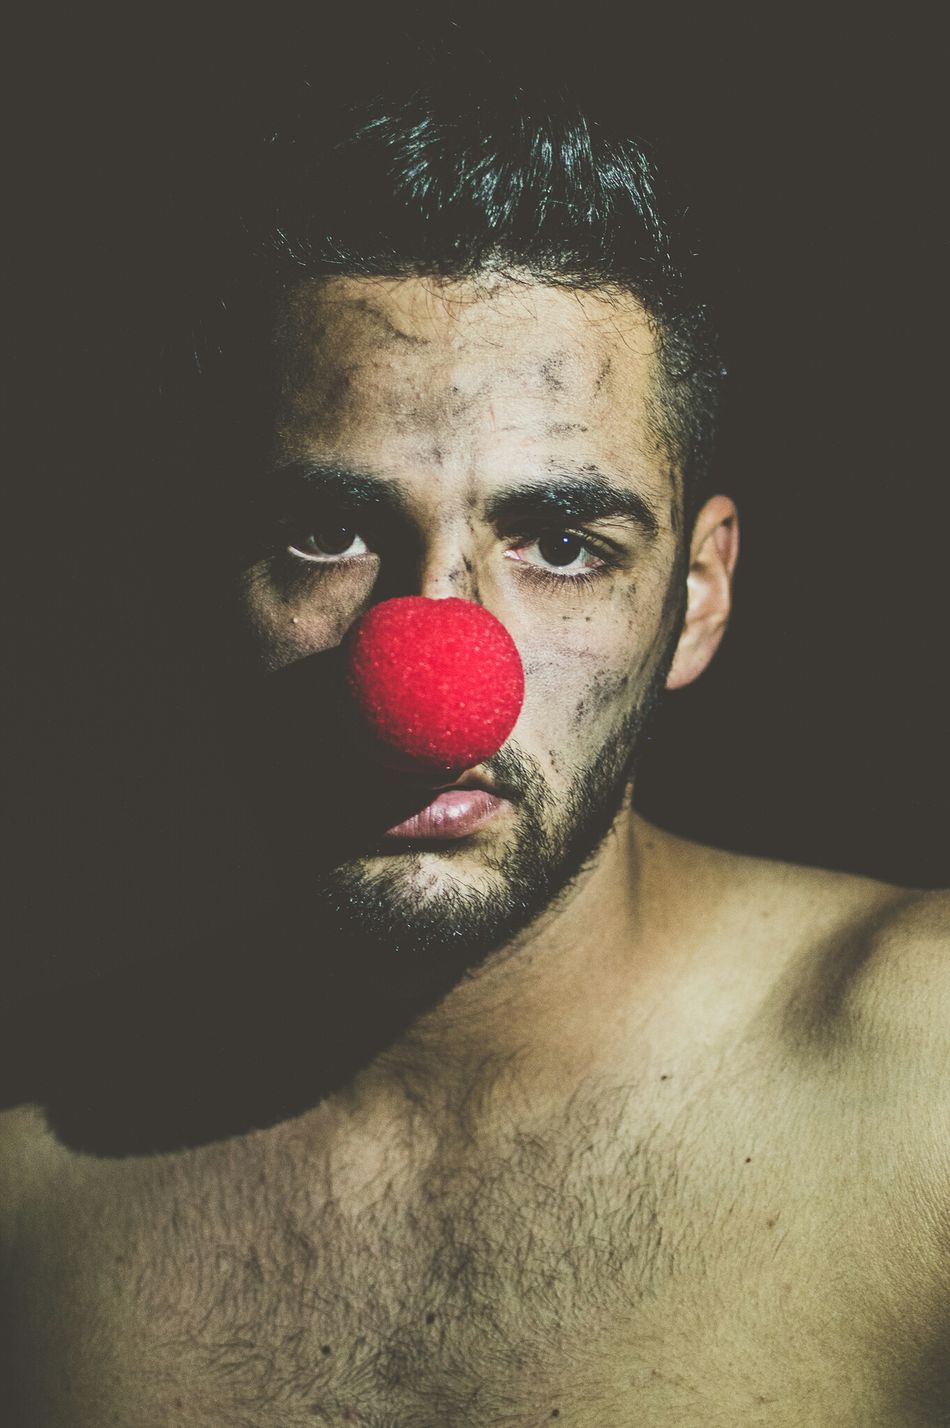 the clown... The Portraitist - 2016 EyeEm Awards Enjoying Life EyeEm Best Shots Eye4photography  EyeEm Gallery Portrait Clown Red Nose Fine Art Hello World Cheese! Nikon Light And Shadow Light Getting Inspired People Men Style Beard Men Fashion Style Getting Creative Eyes Composition Fine Art Photography